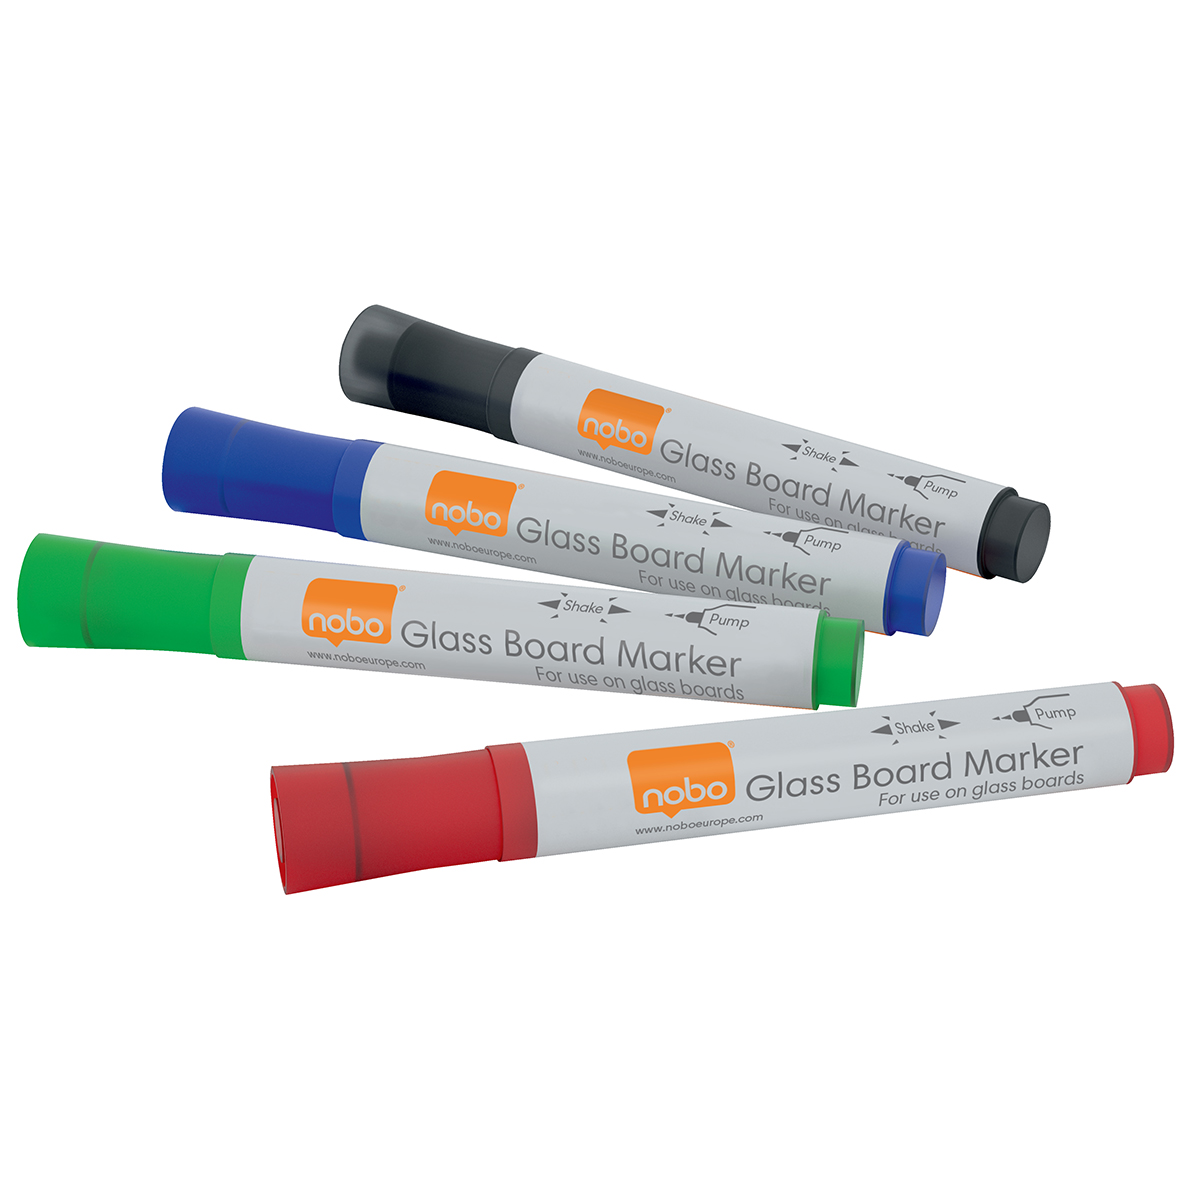 Nobo 1905324 Glass Whiteboard Markers pack of 4